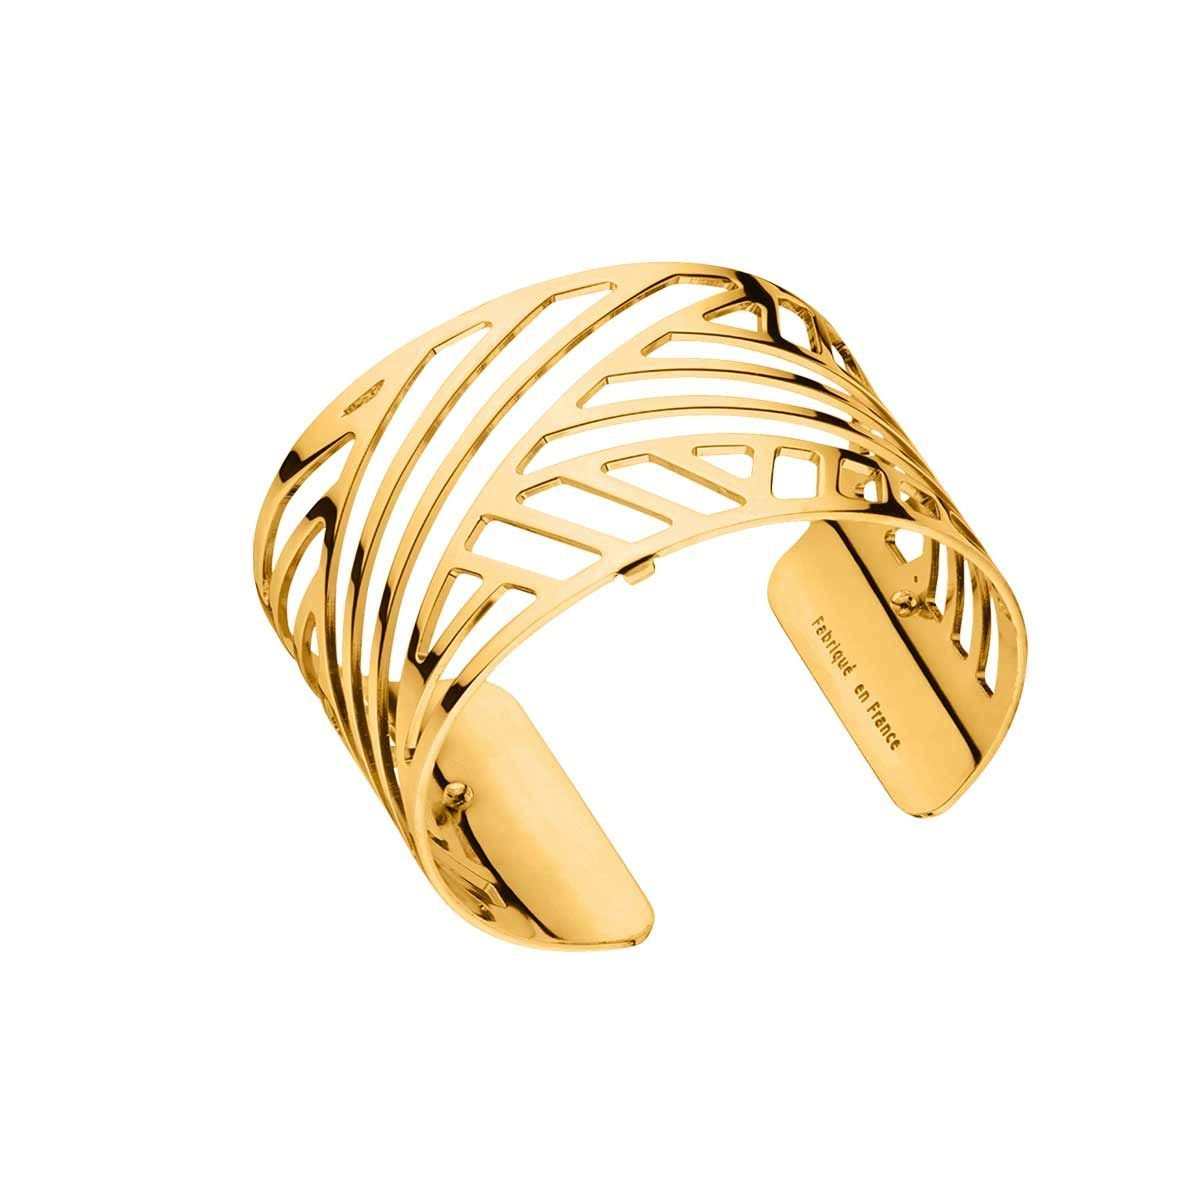 Les Georgette Ruban 40mm Cuff in Gold